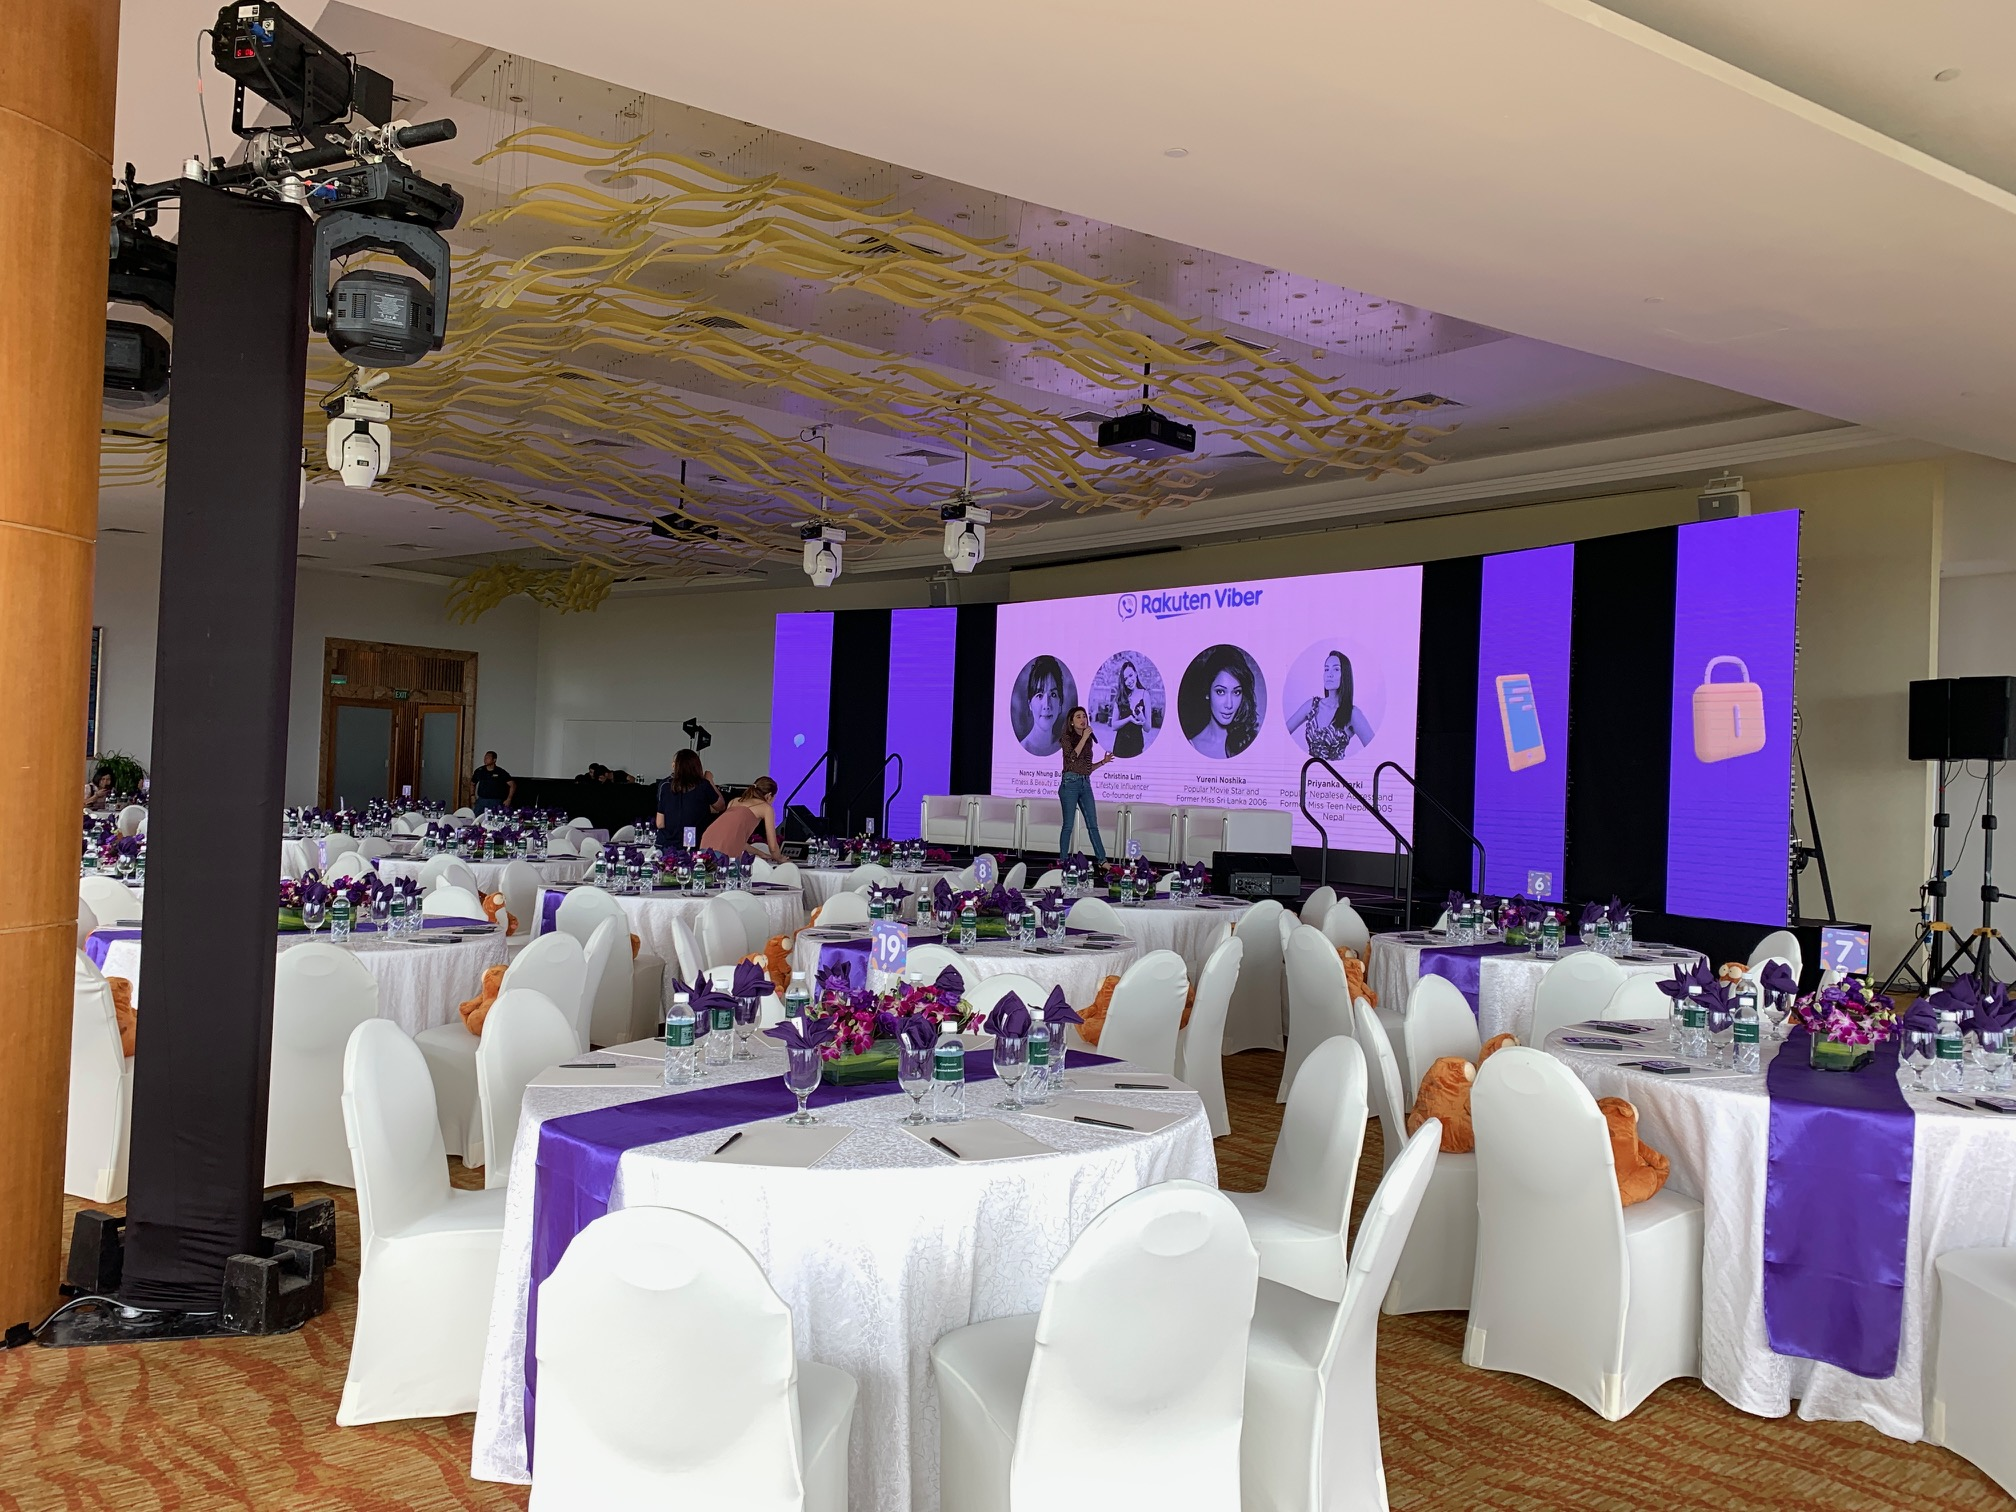 audio visual stage rental for events-Hertz2-LED walls and AV specialists